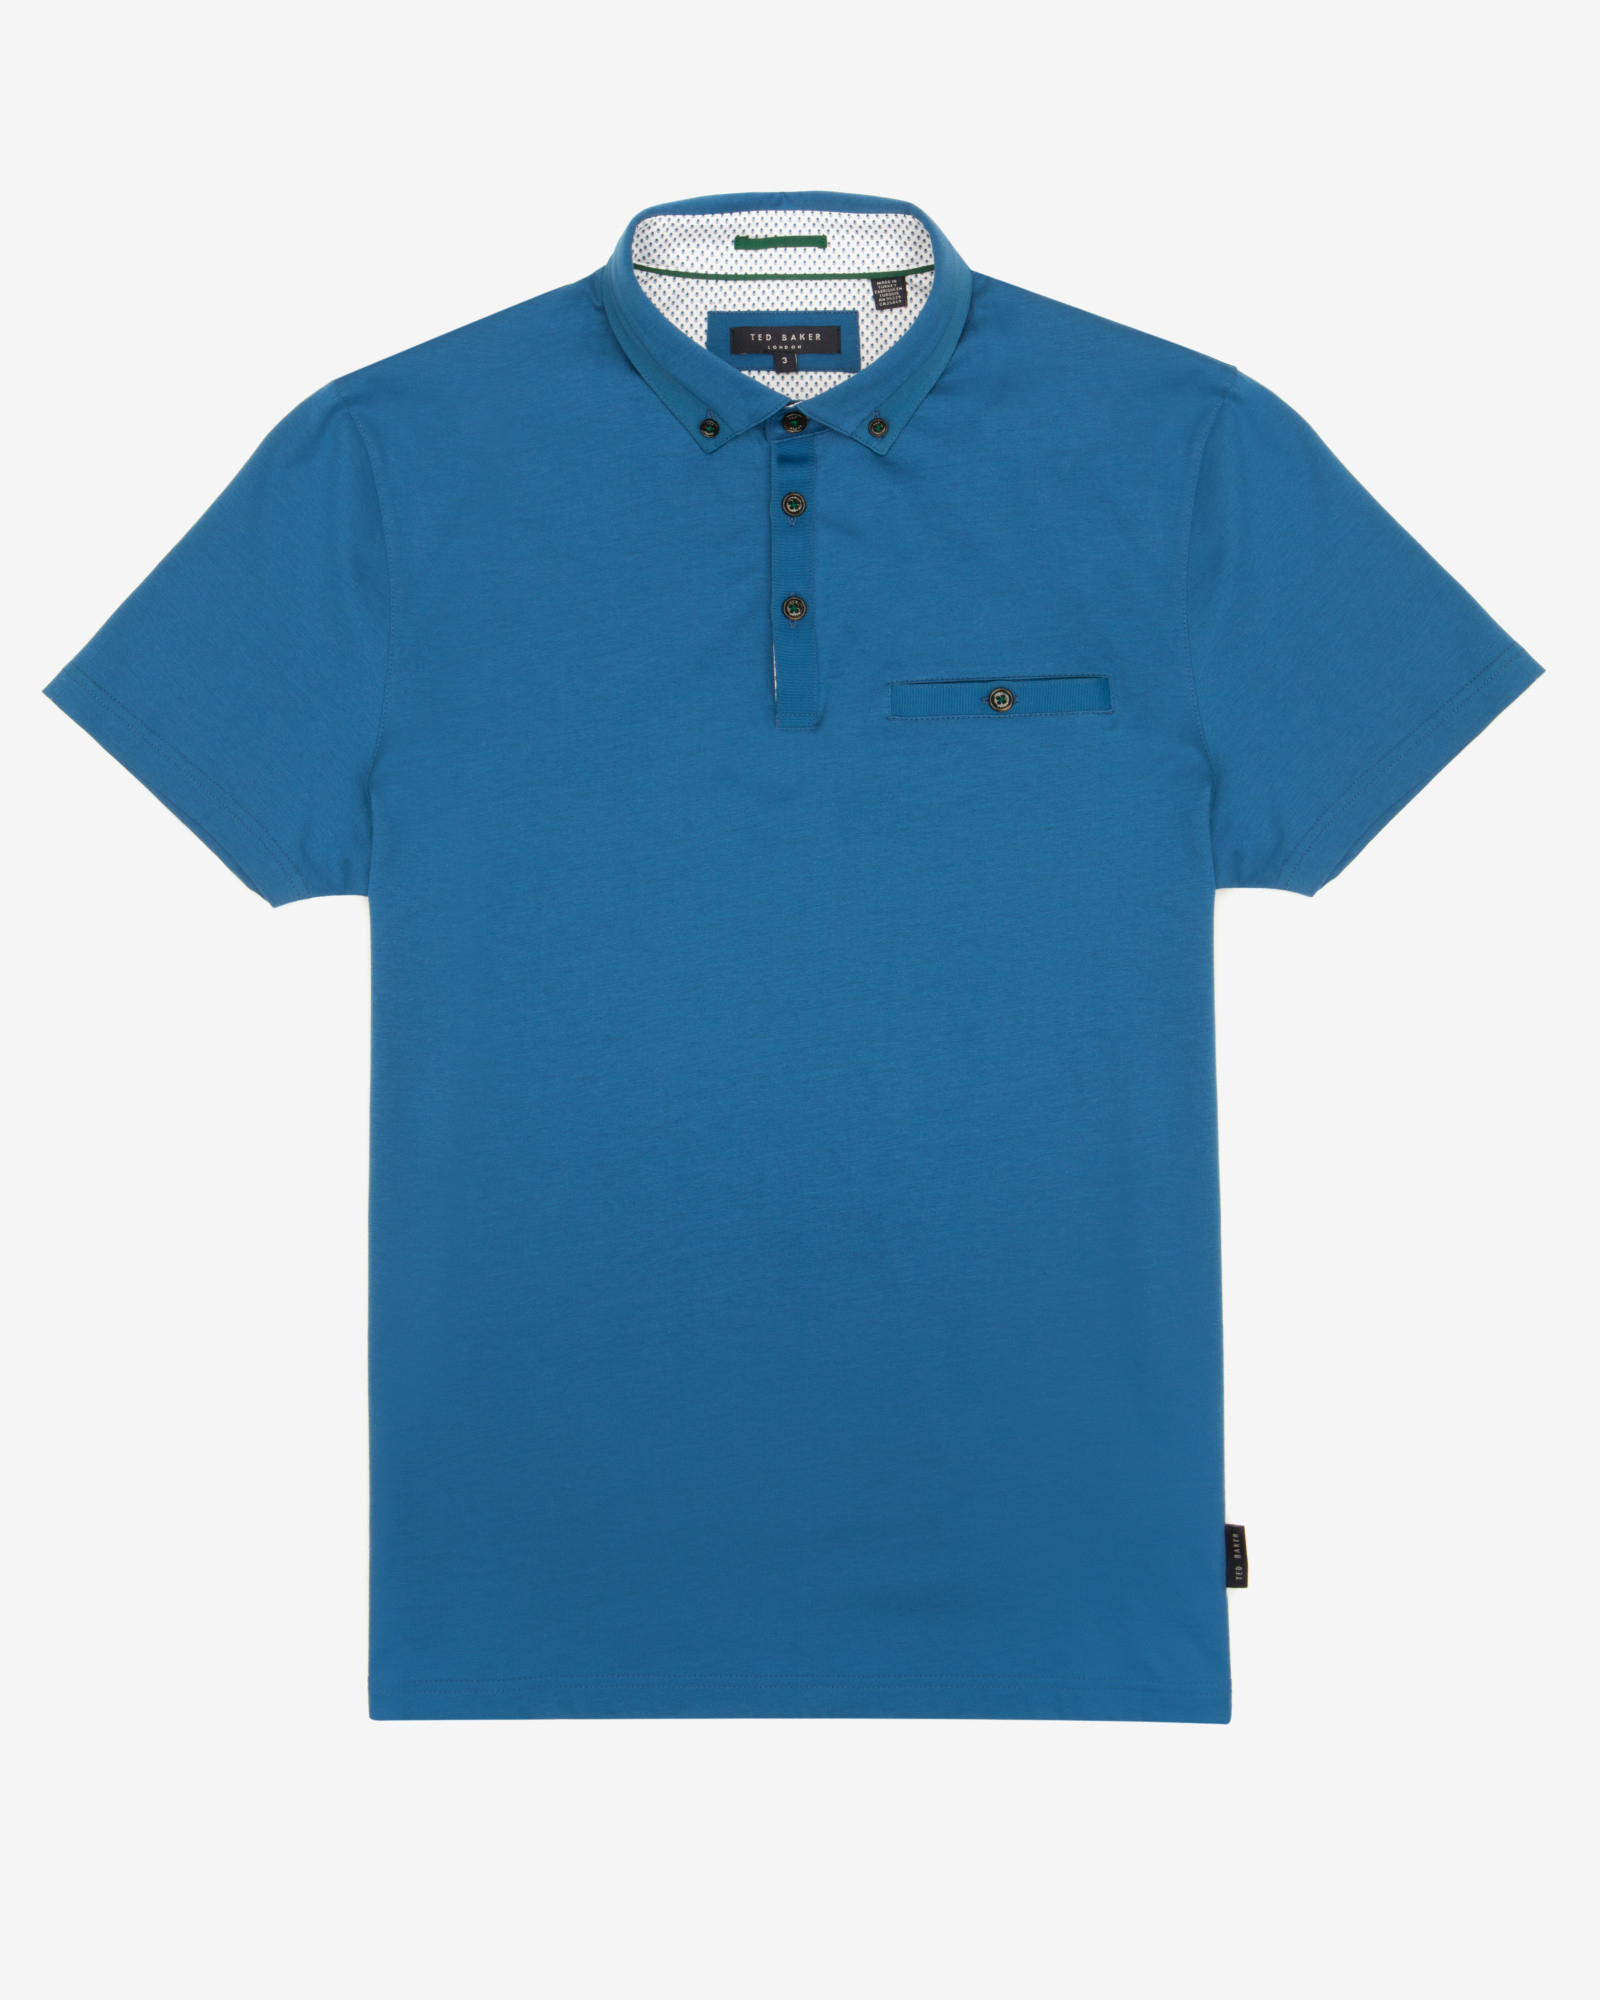 Ted baker classic polo shirt in blue for men mid blue lyst for Ted baker mens polo shirts